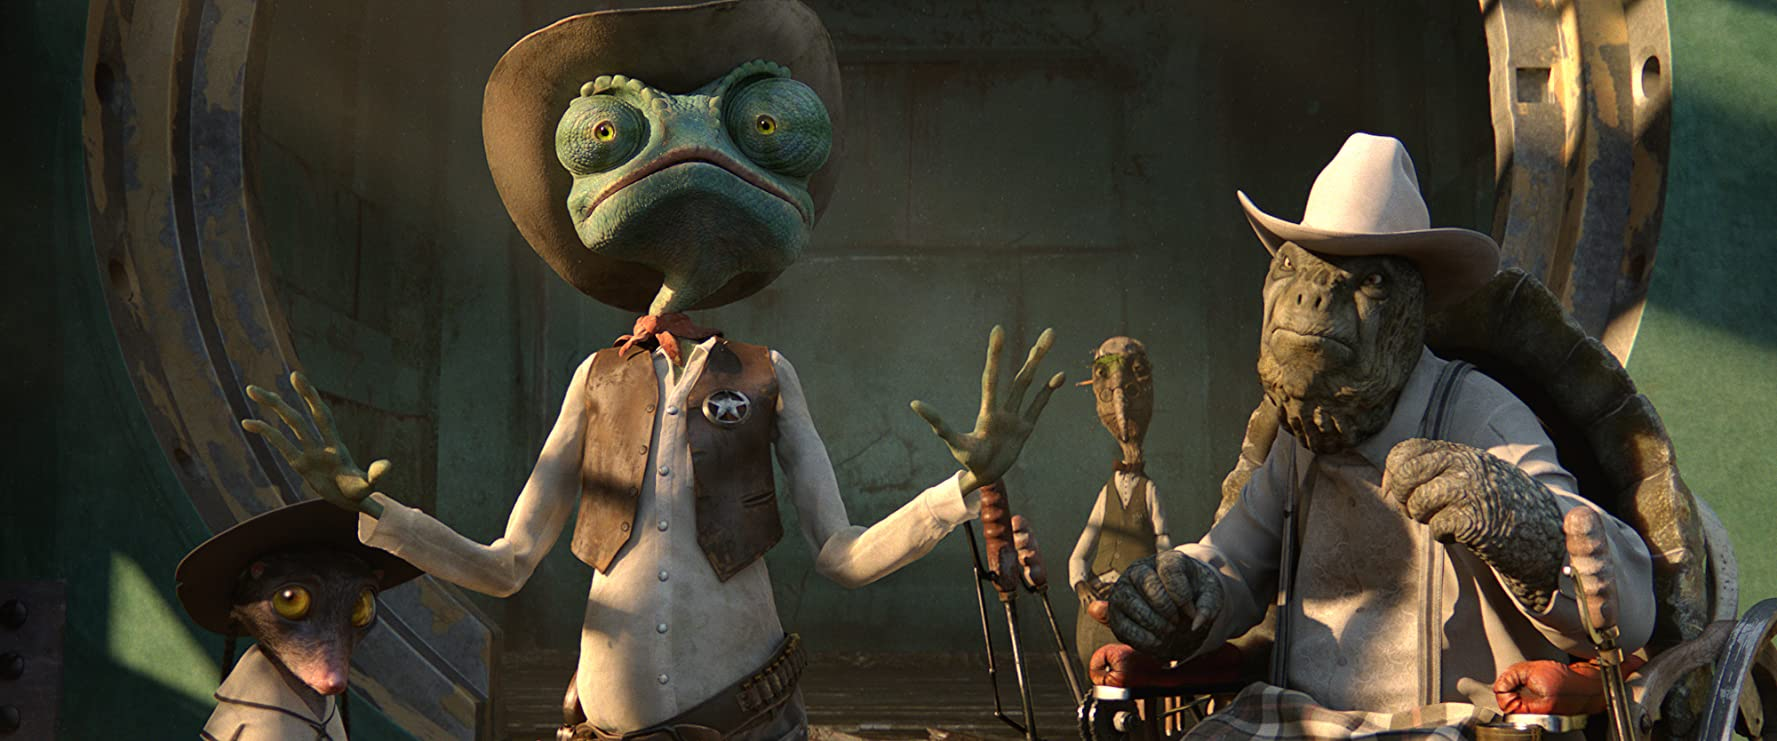 Johnny Depp, Ned Beatty, and Abigail Breslin in Rango (2011)